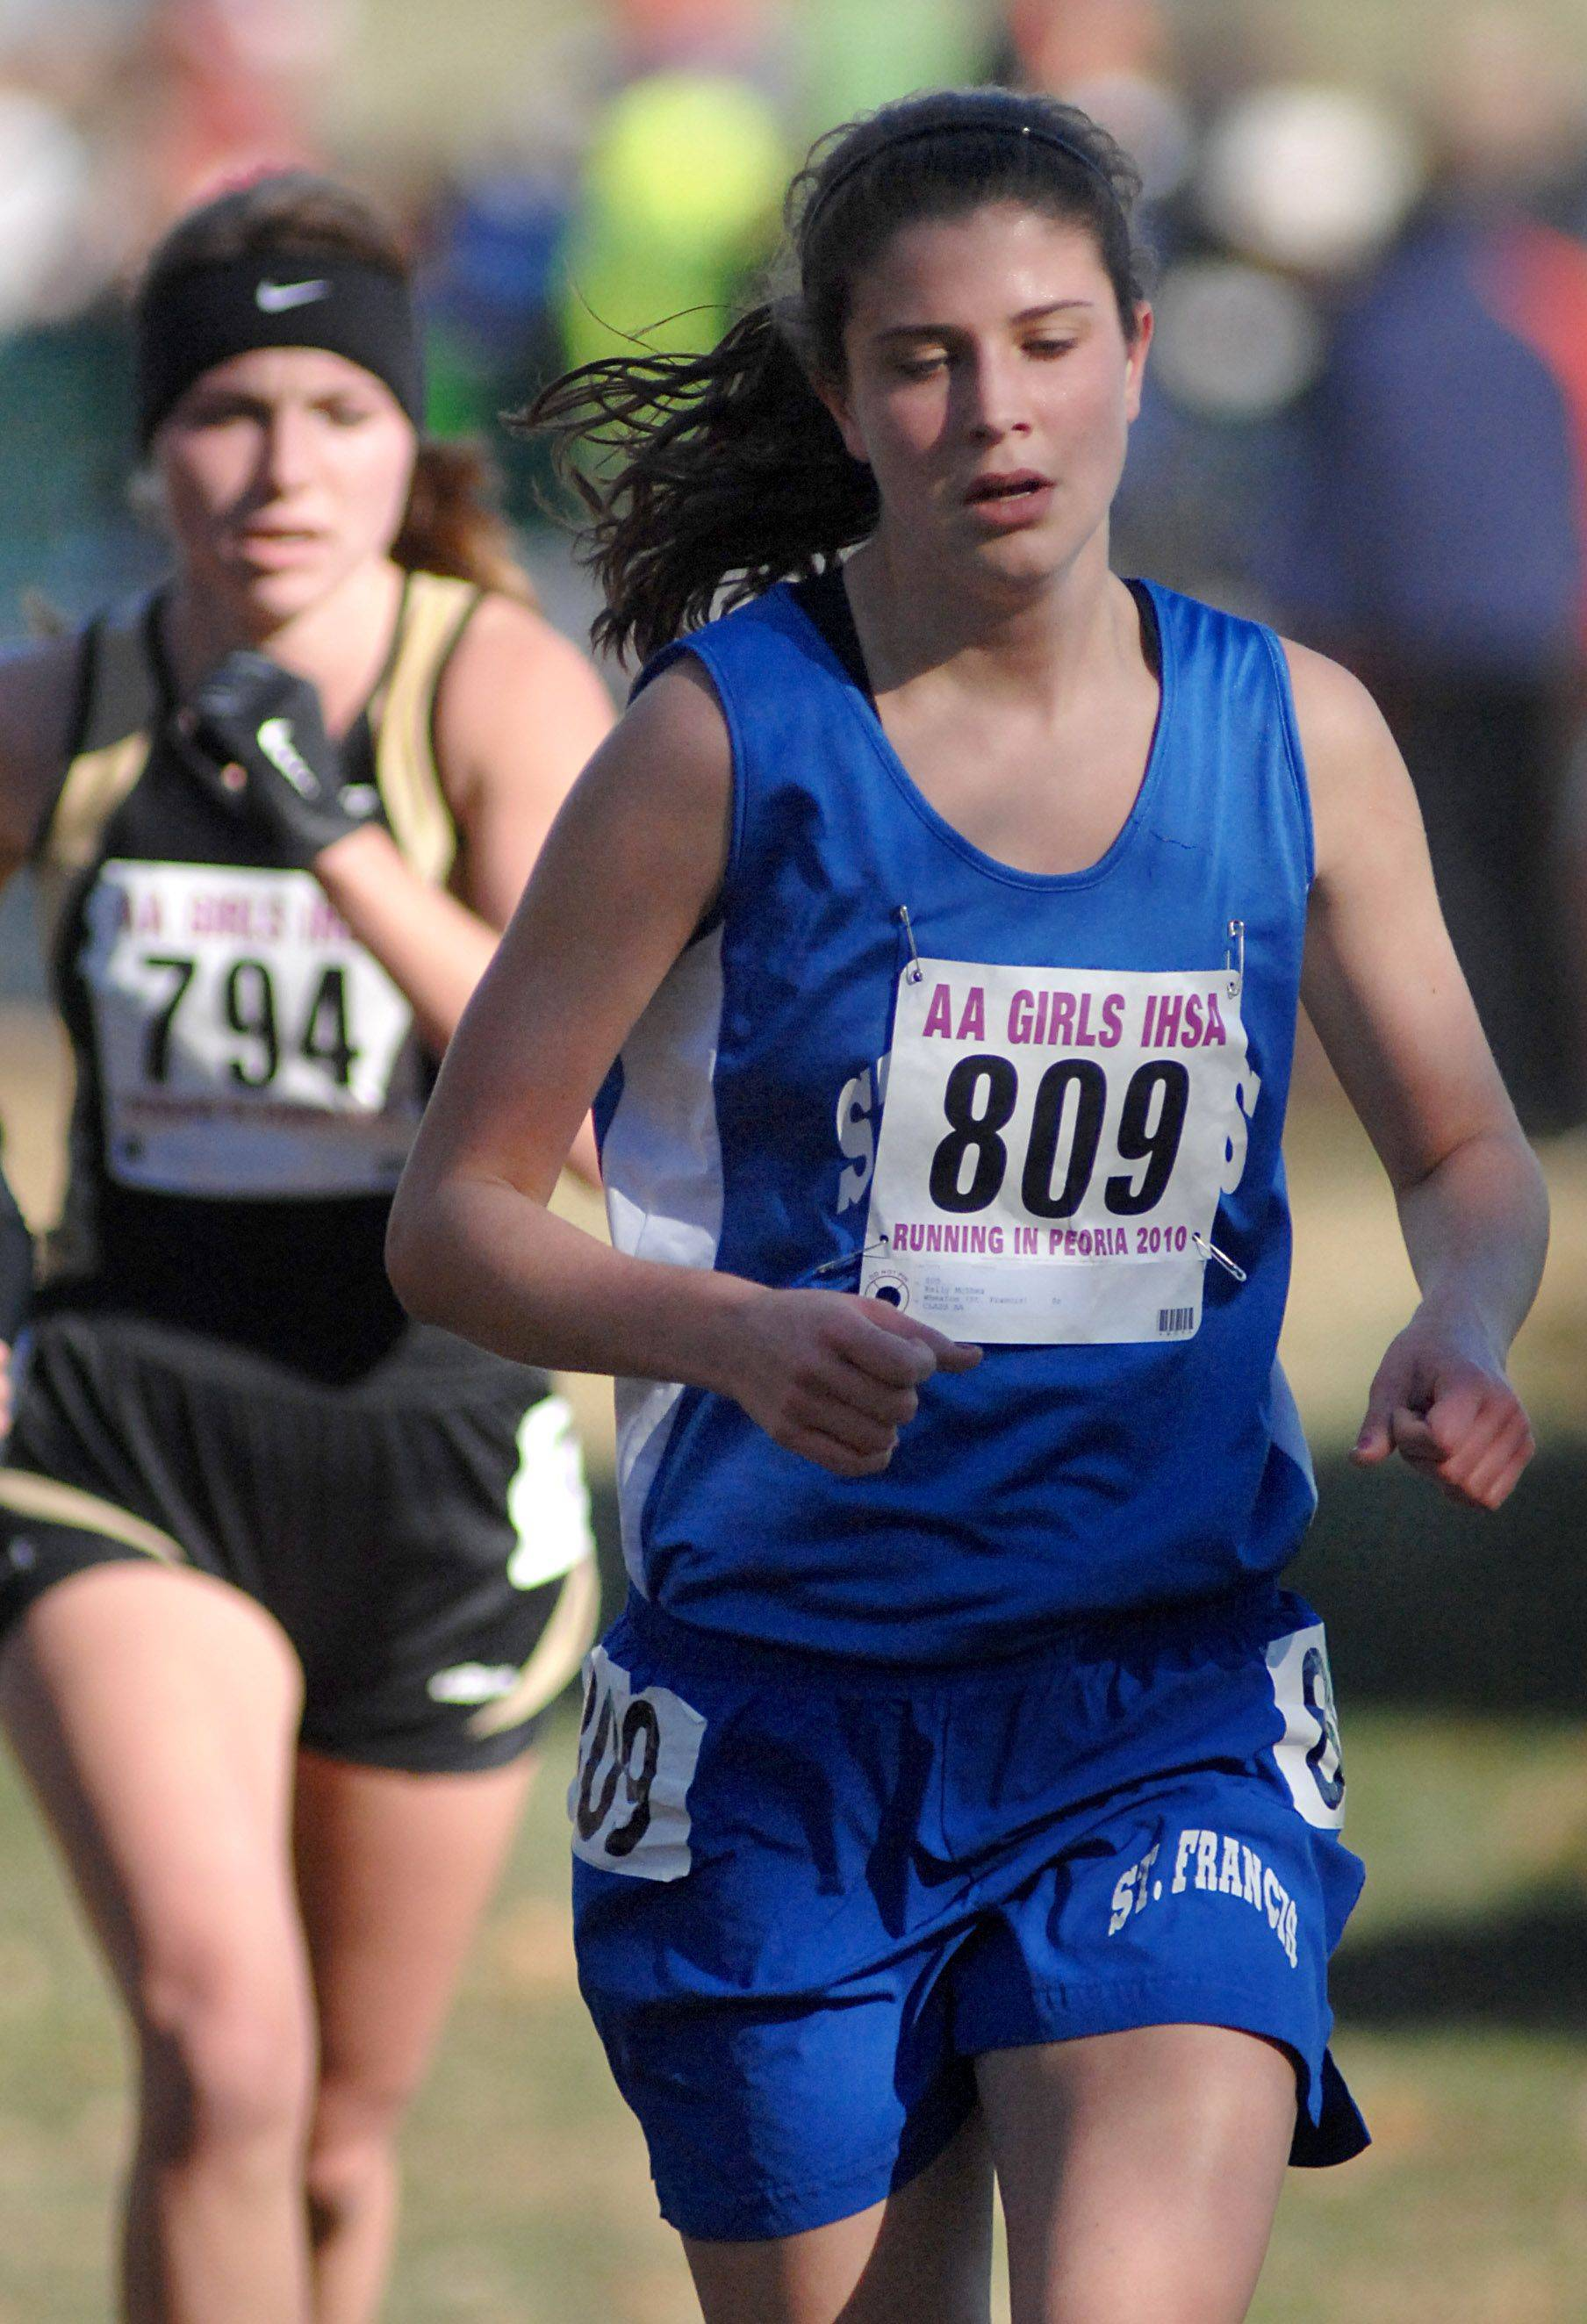 Wheaton St. Francis' Kelly McShea in the 2A class of the state cross country meet at Detweiller Park in Peoria on Saturday, November 6.